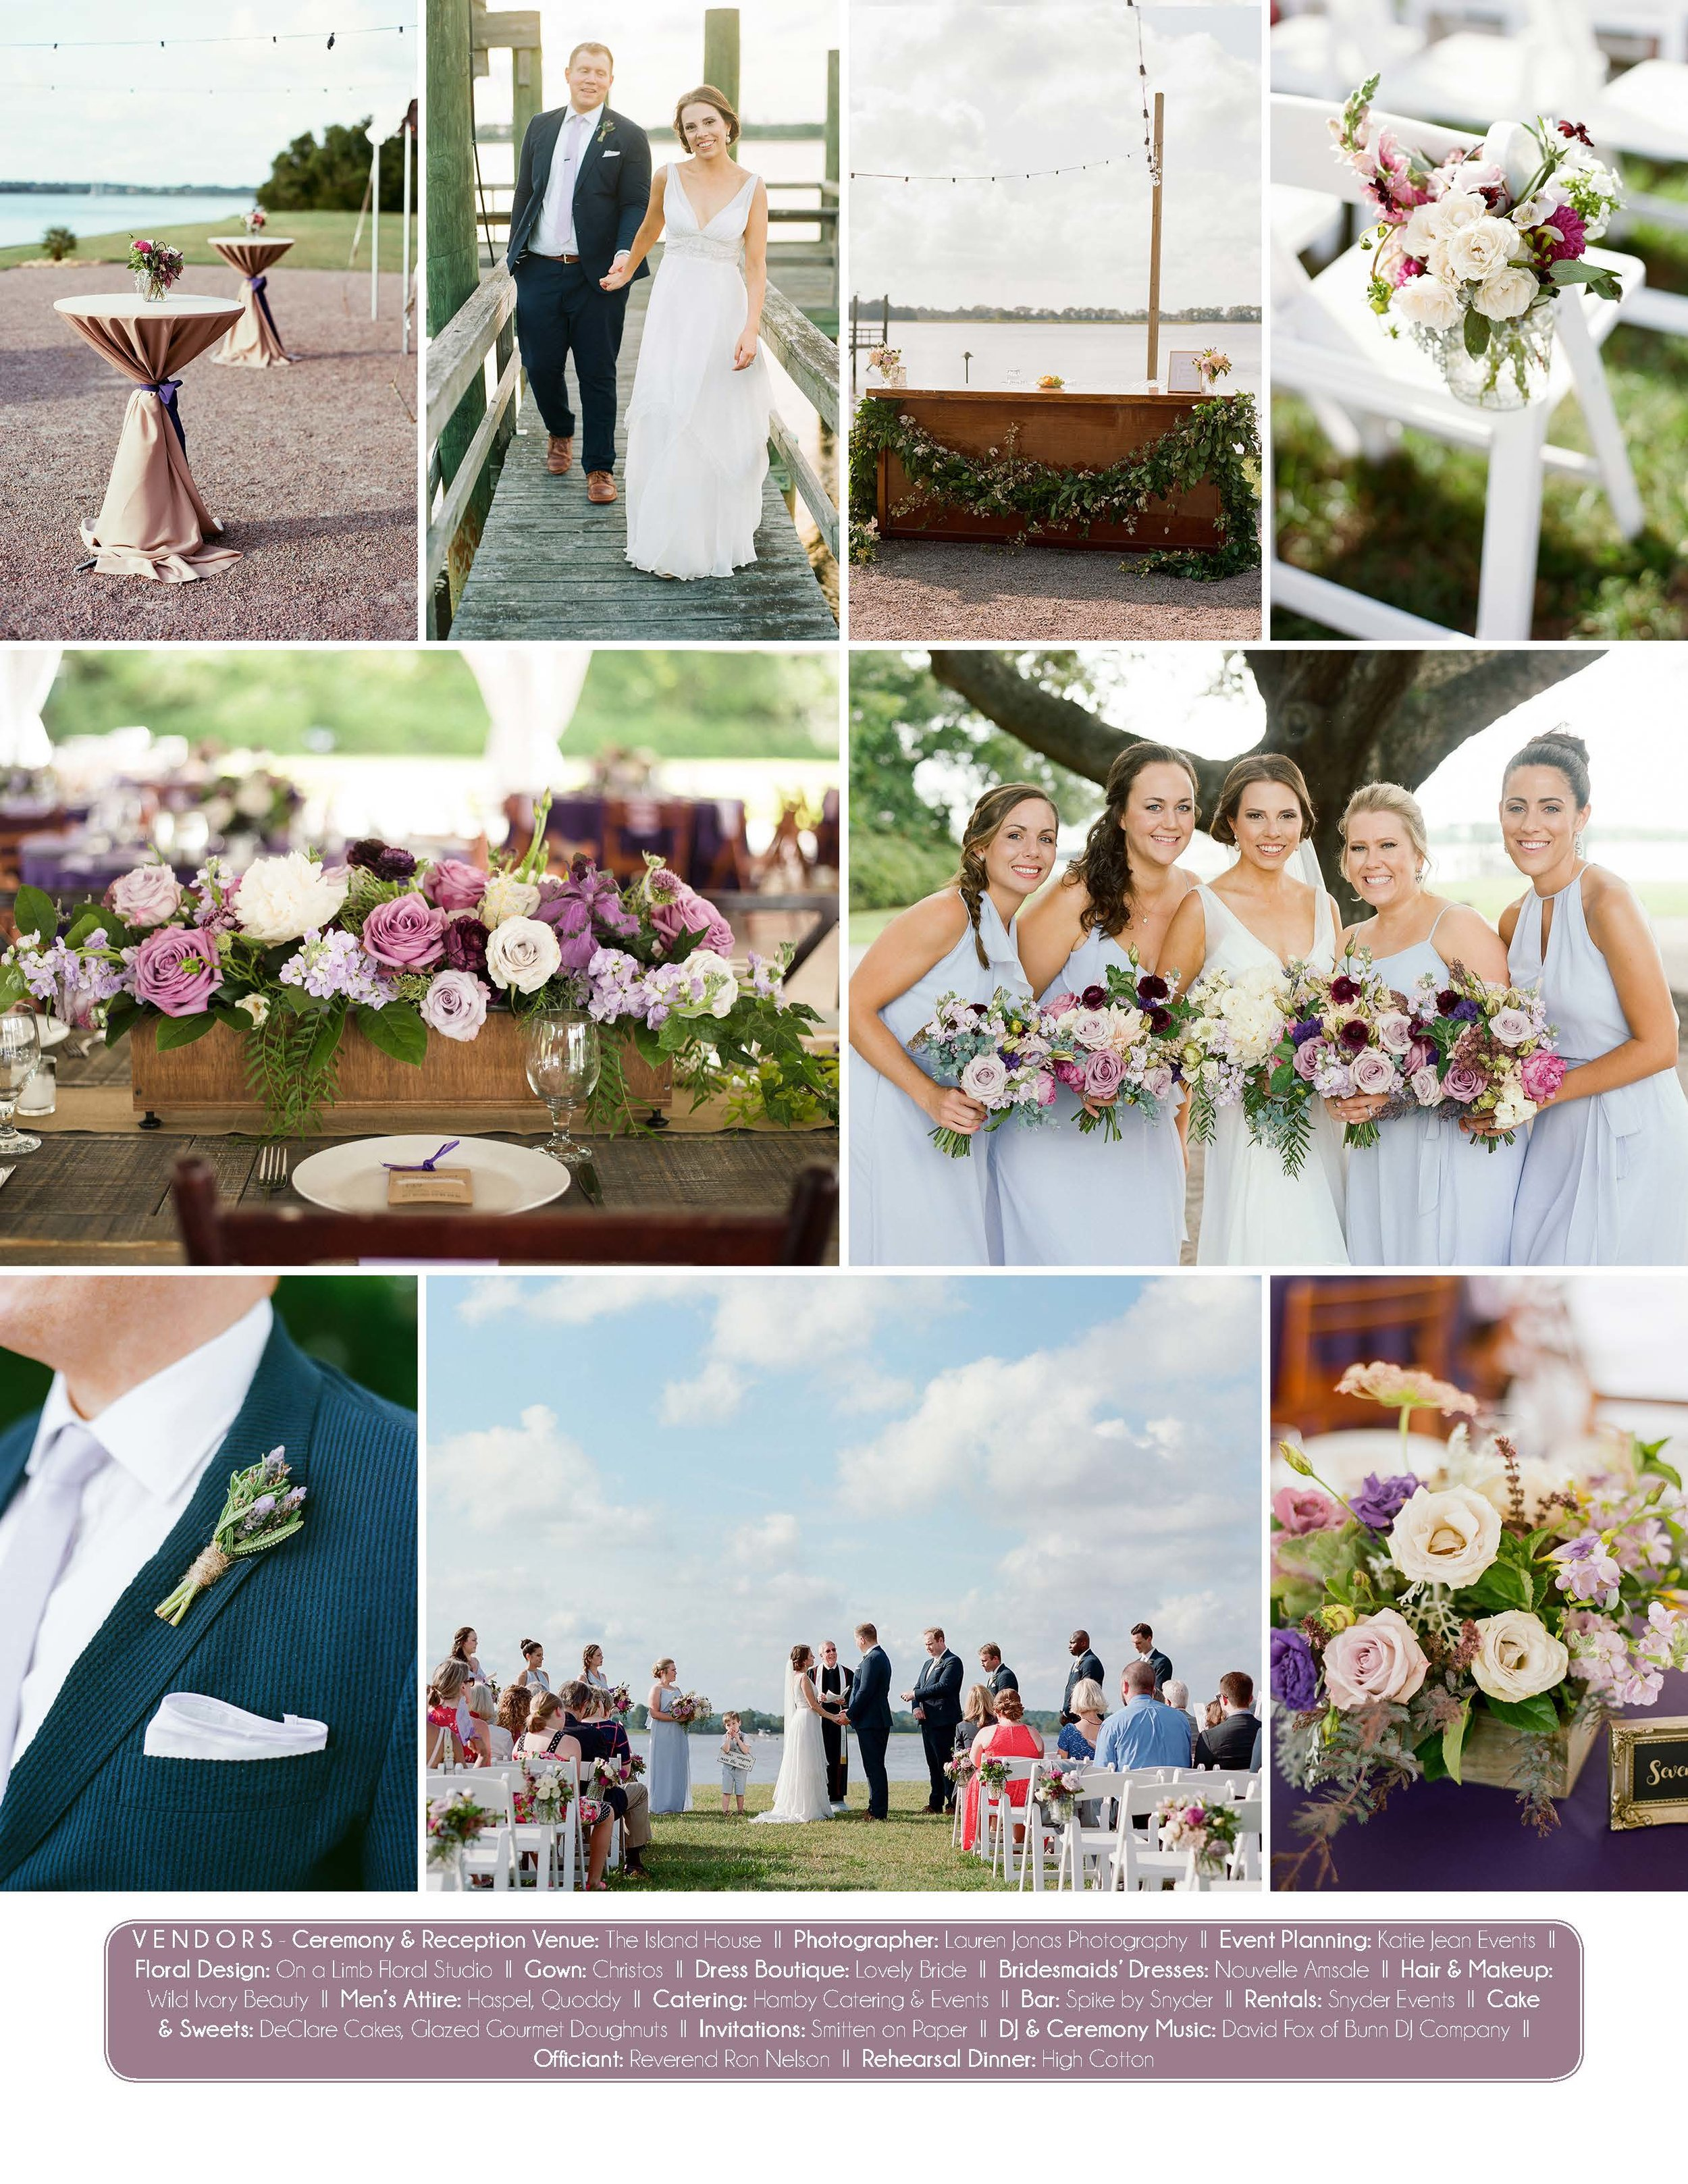 Lauren-Jonas-Photography-published-in-A-Lowcountry-Wedding-Magazine_Page_2.jpg